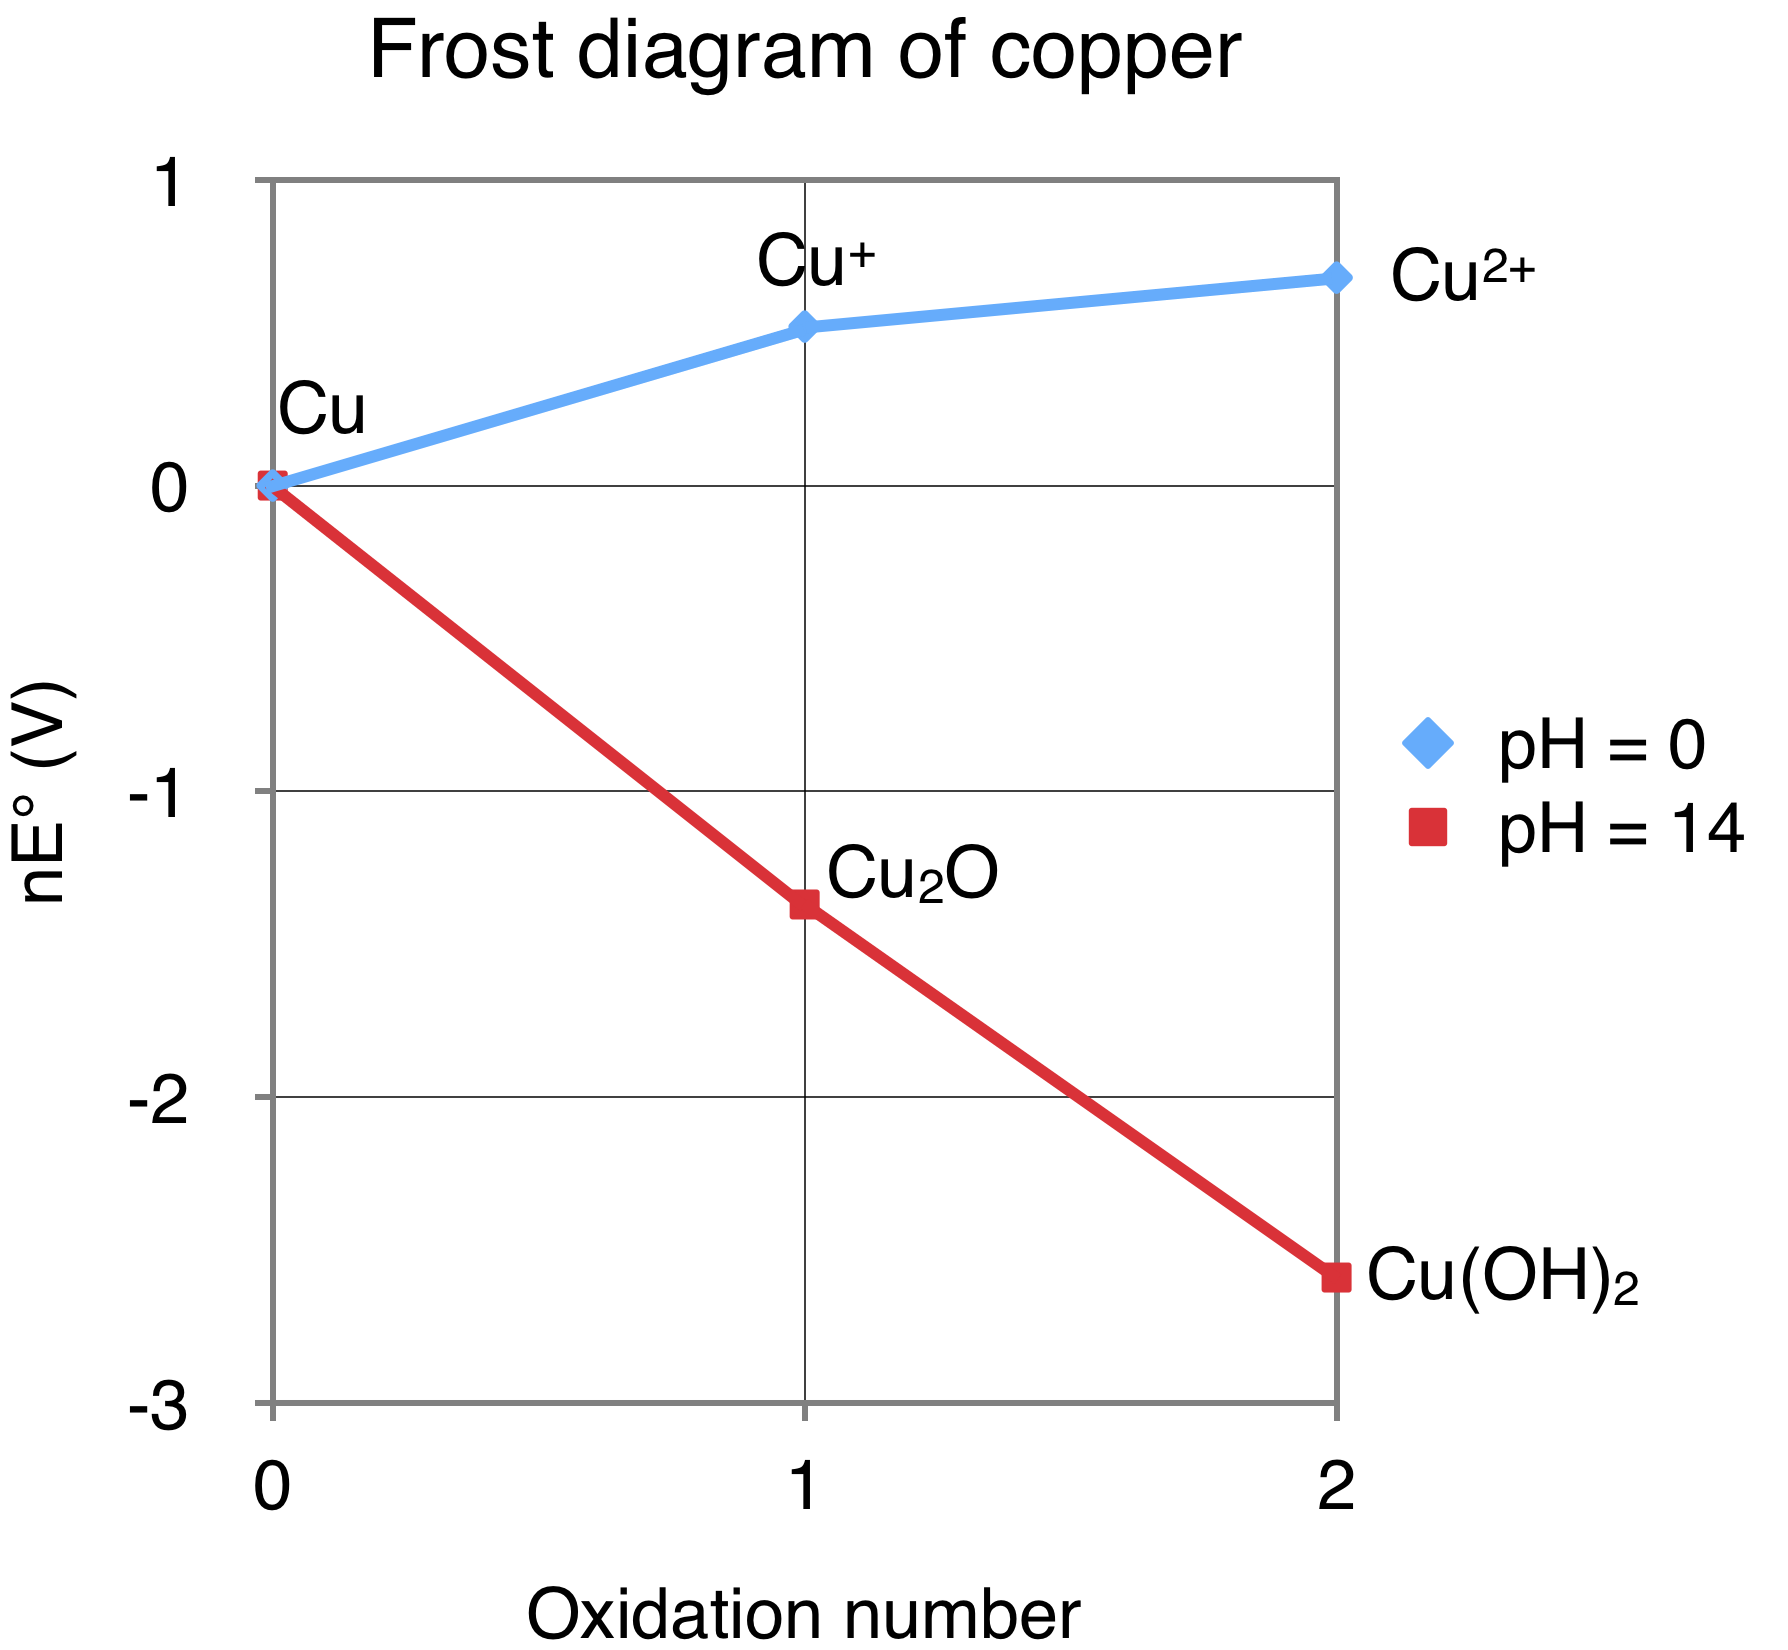 file:frost diagram for copper png